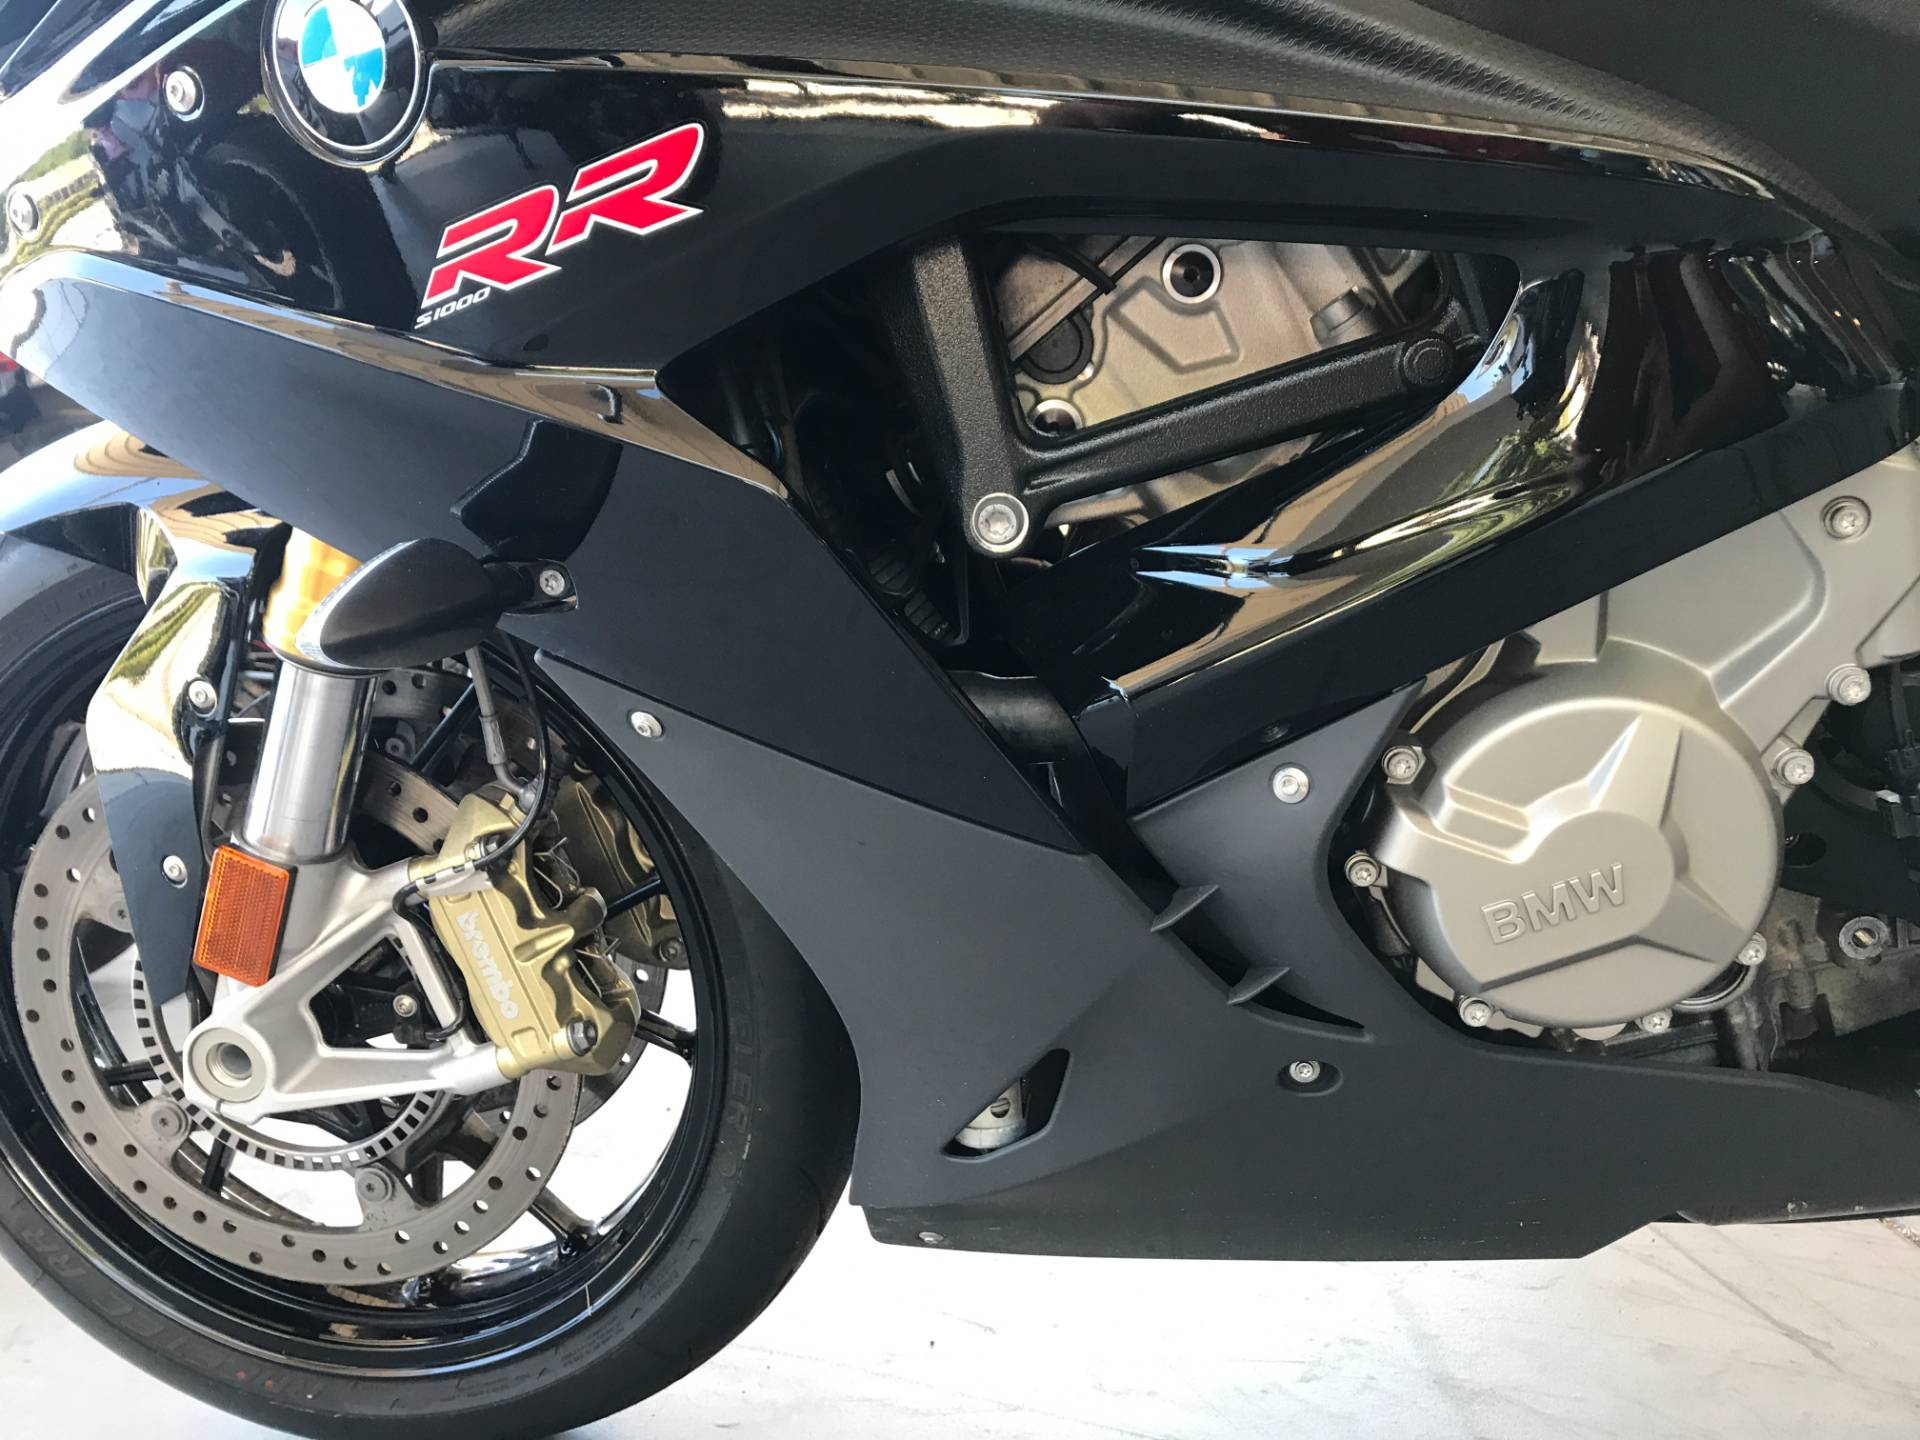 2015 BMW S 1000 RR in Orange Park, Florida